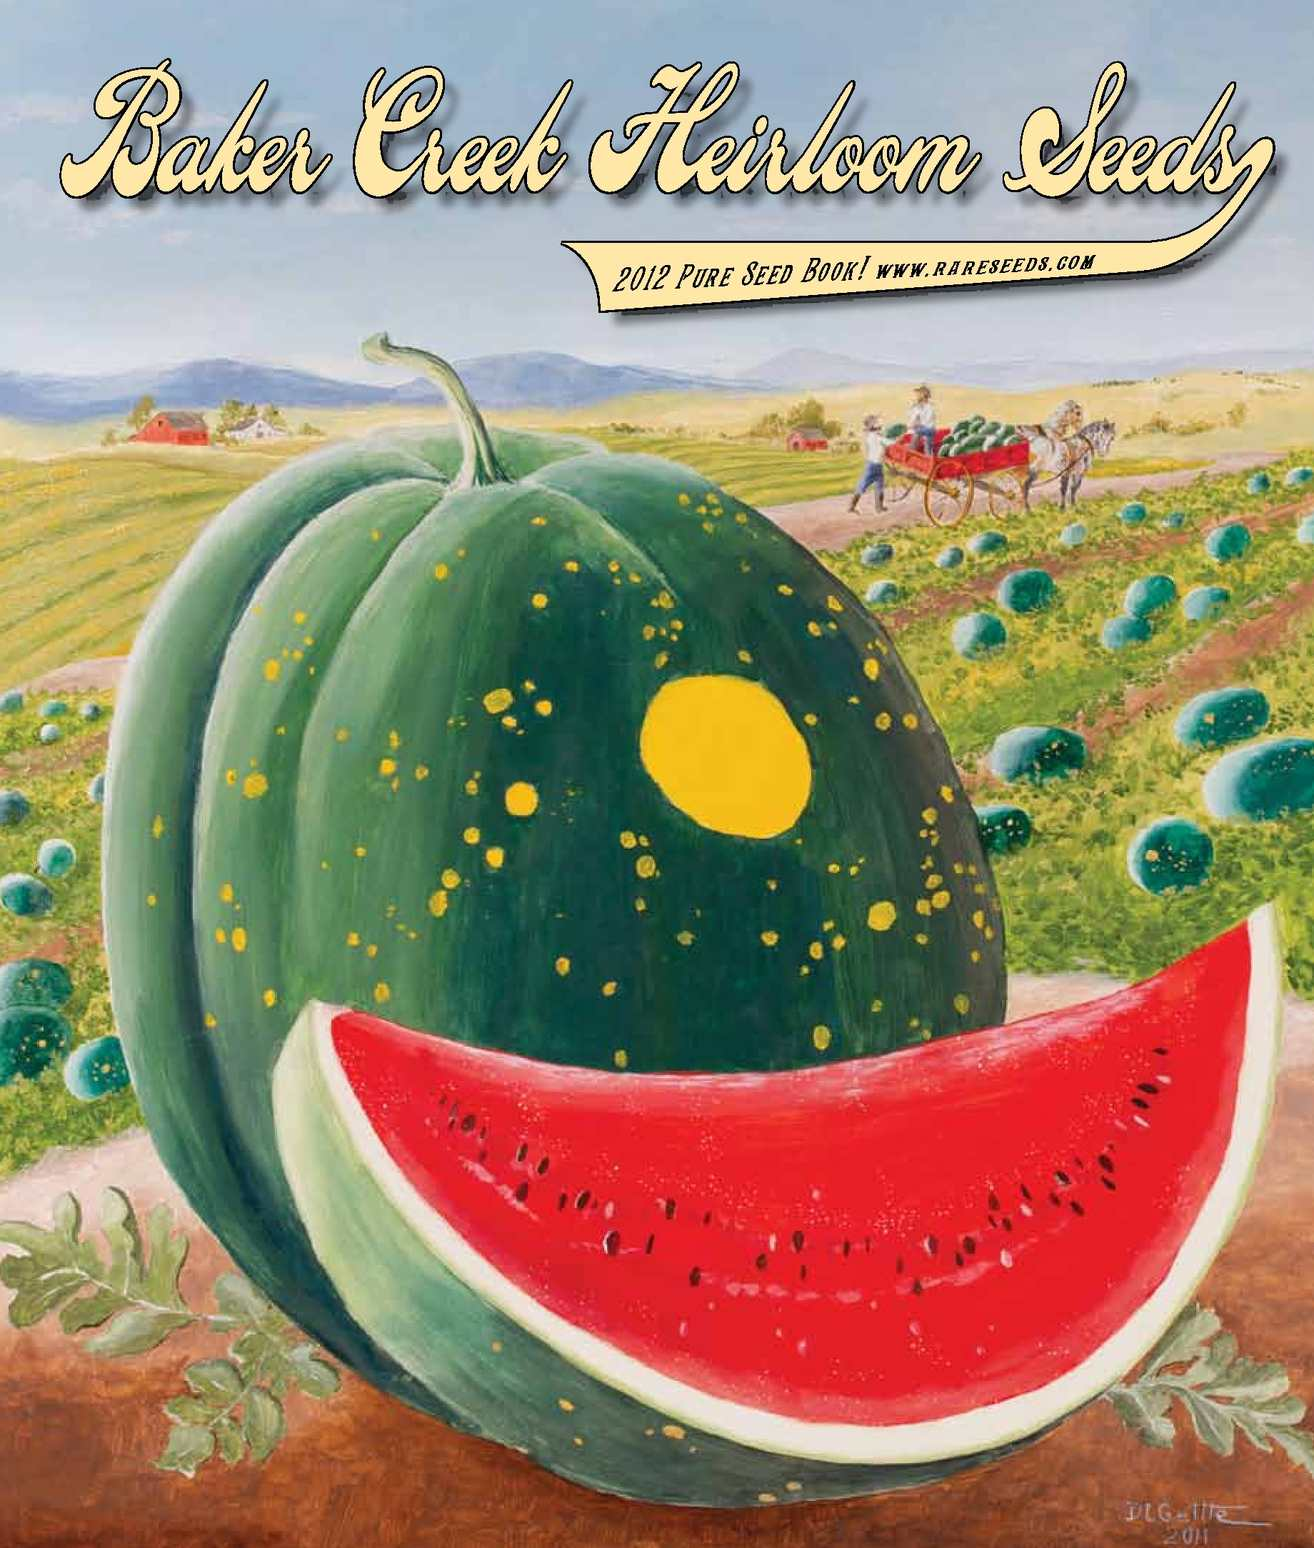 Calaméo - Barker Creek Heirloom Seeds and Rare Seeds